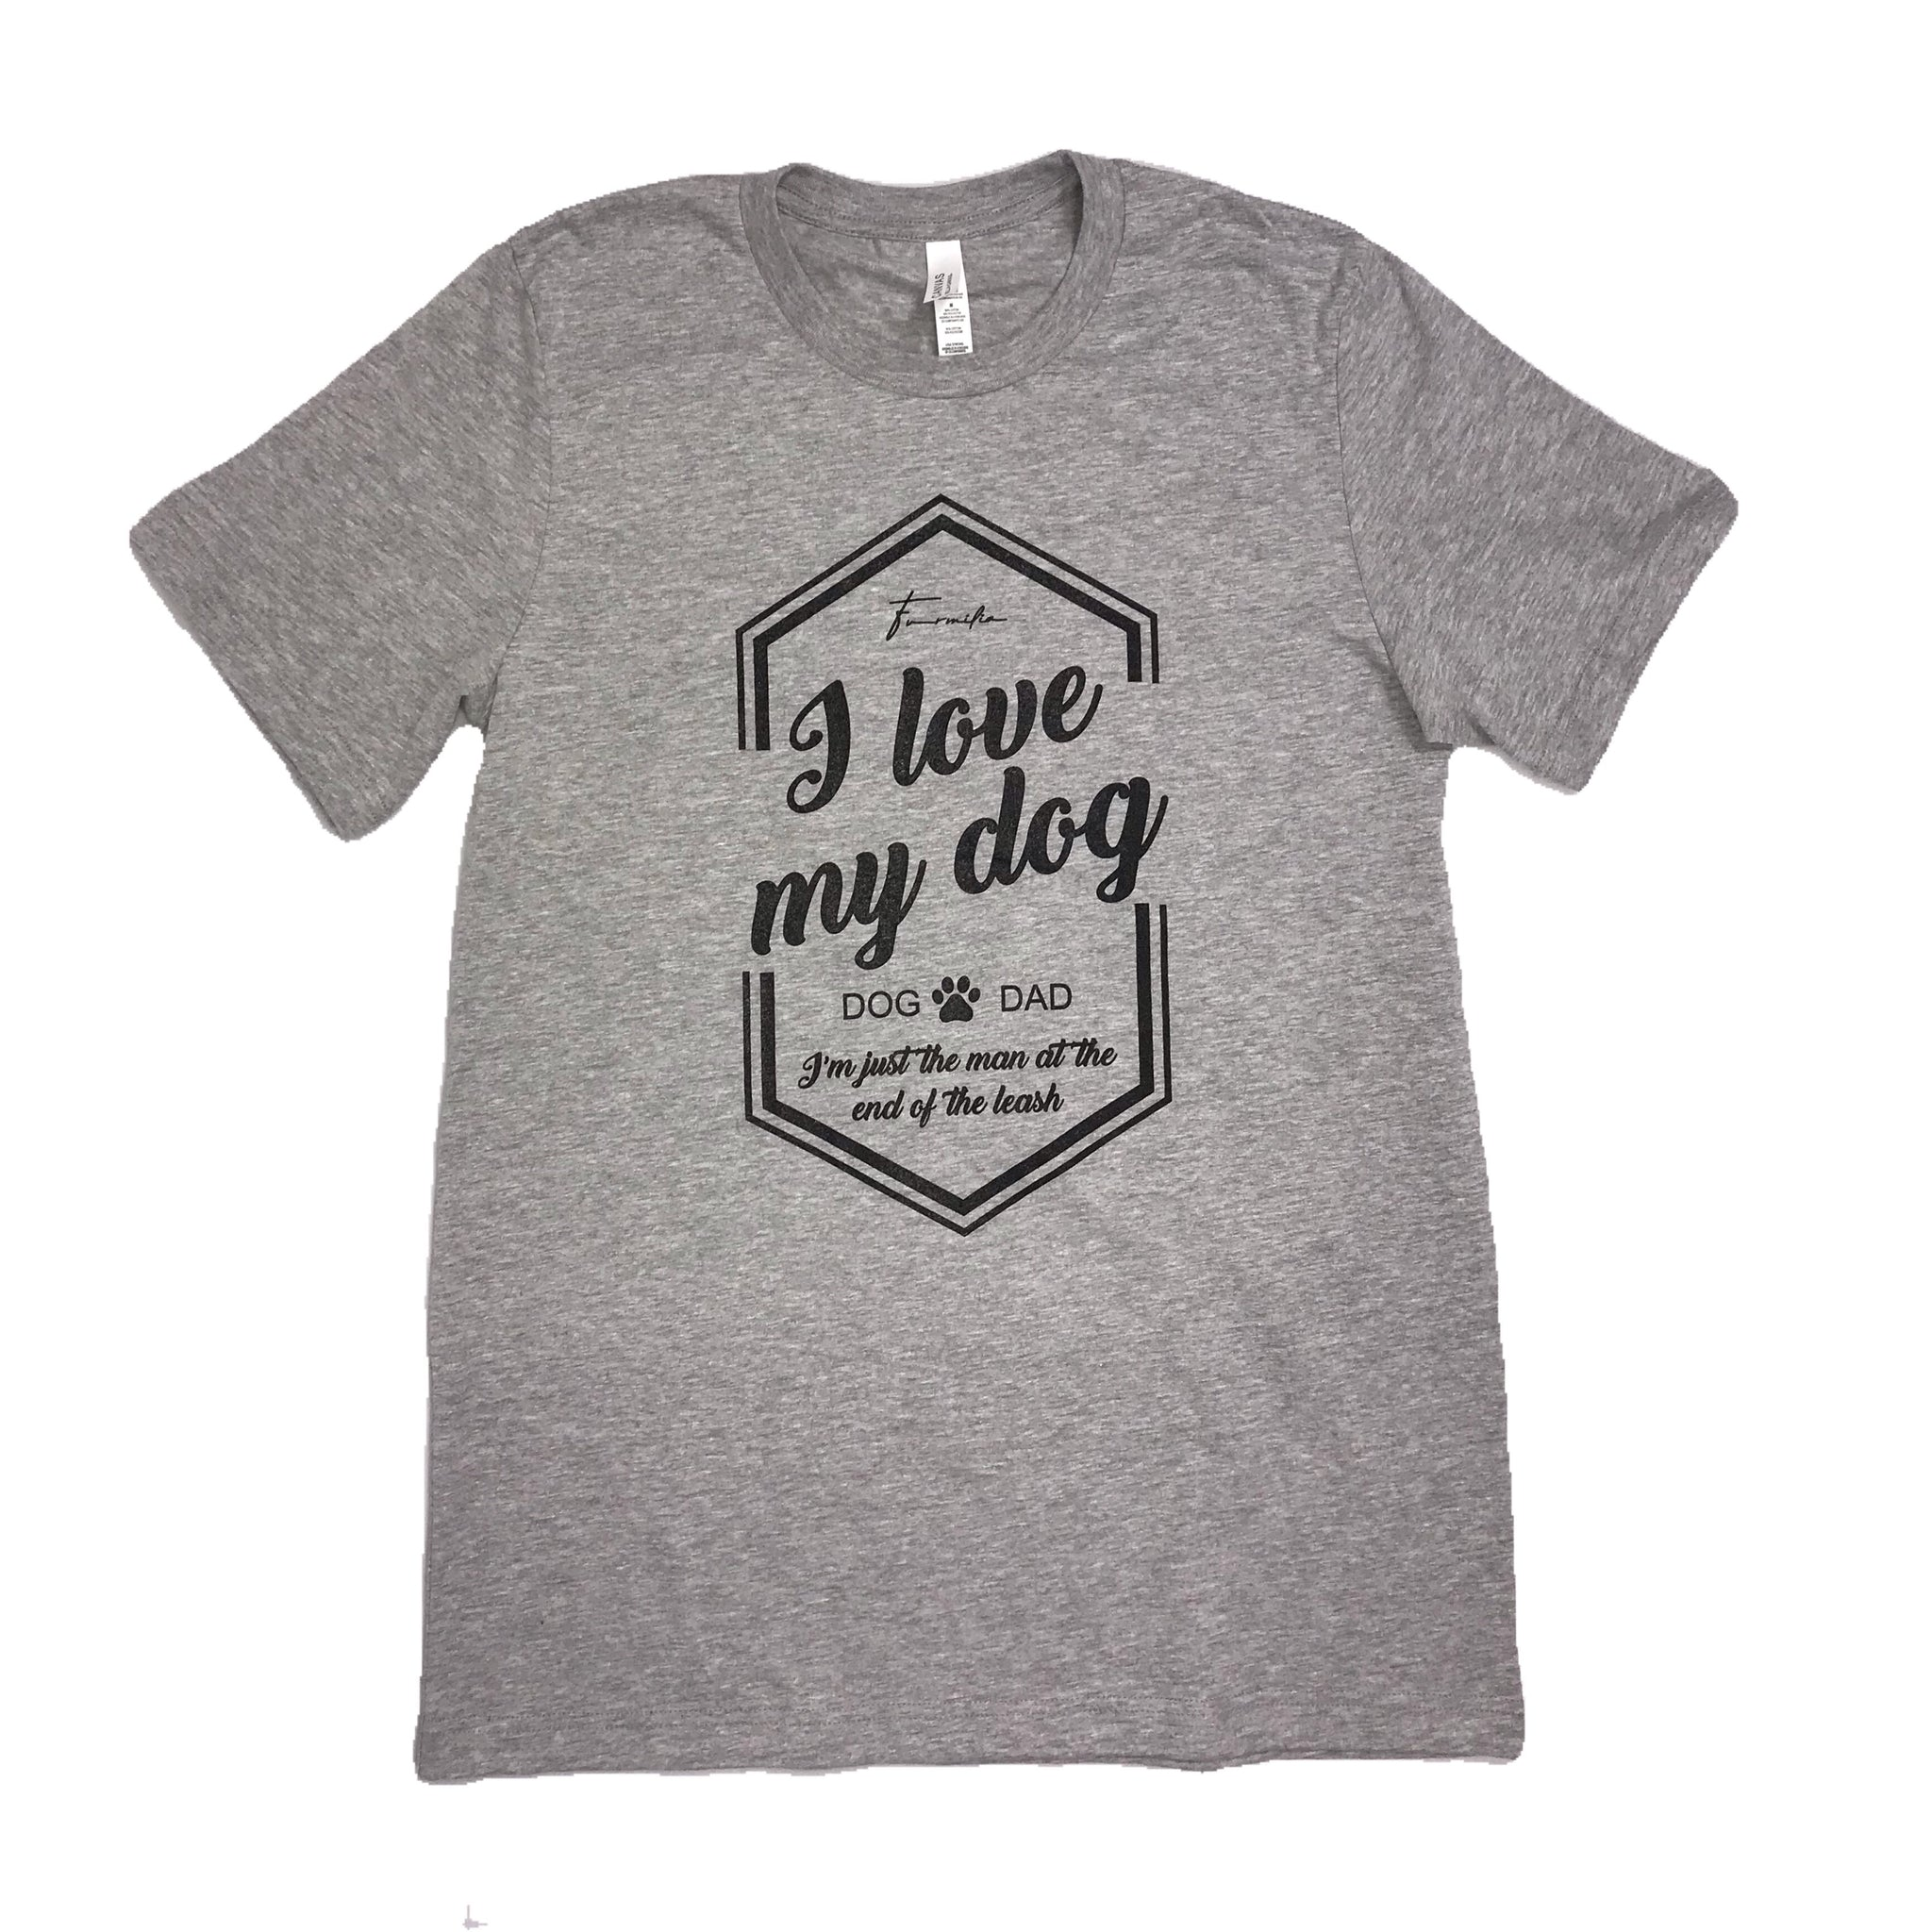 Dog dad Furmilia shirt